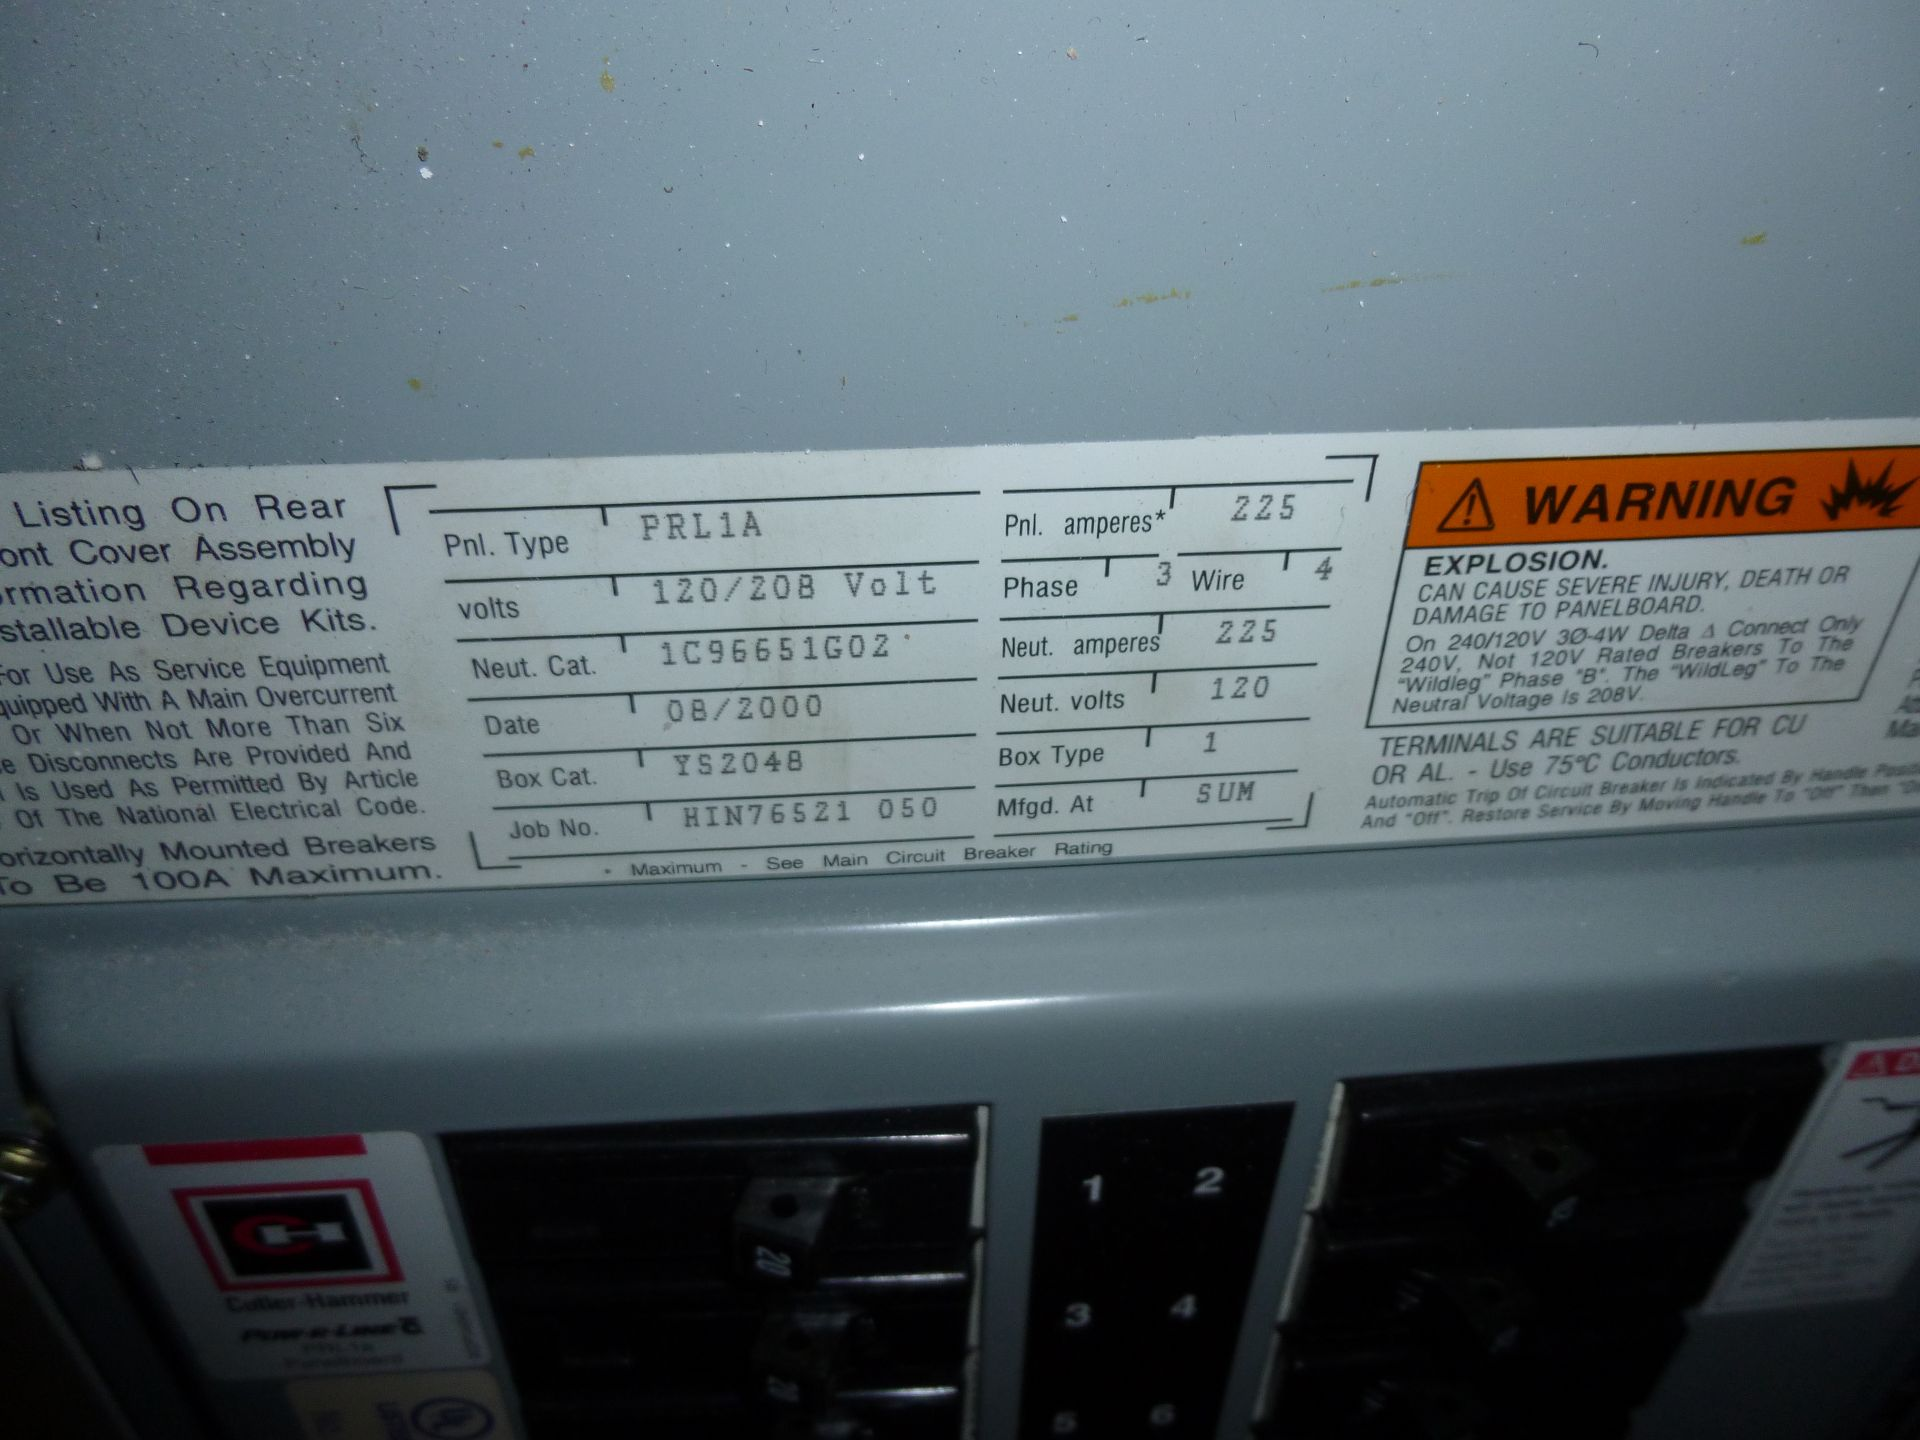 Lot 23 - Cutler Hammer model PRL1A, 225amp box, 120/208 volt, 3 phase, 4 wire, includes all breakers as